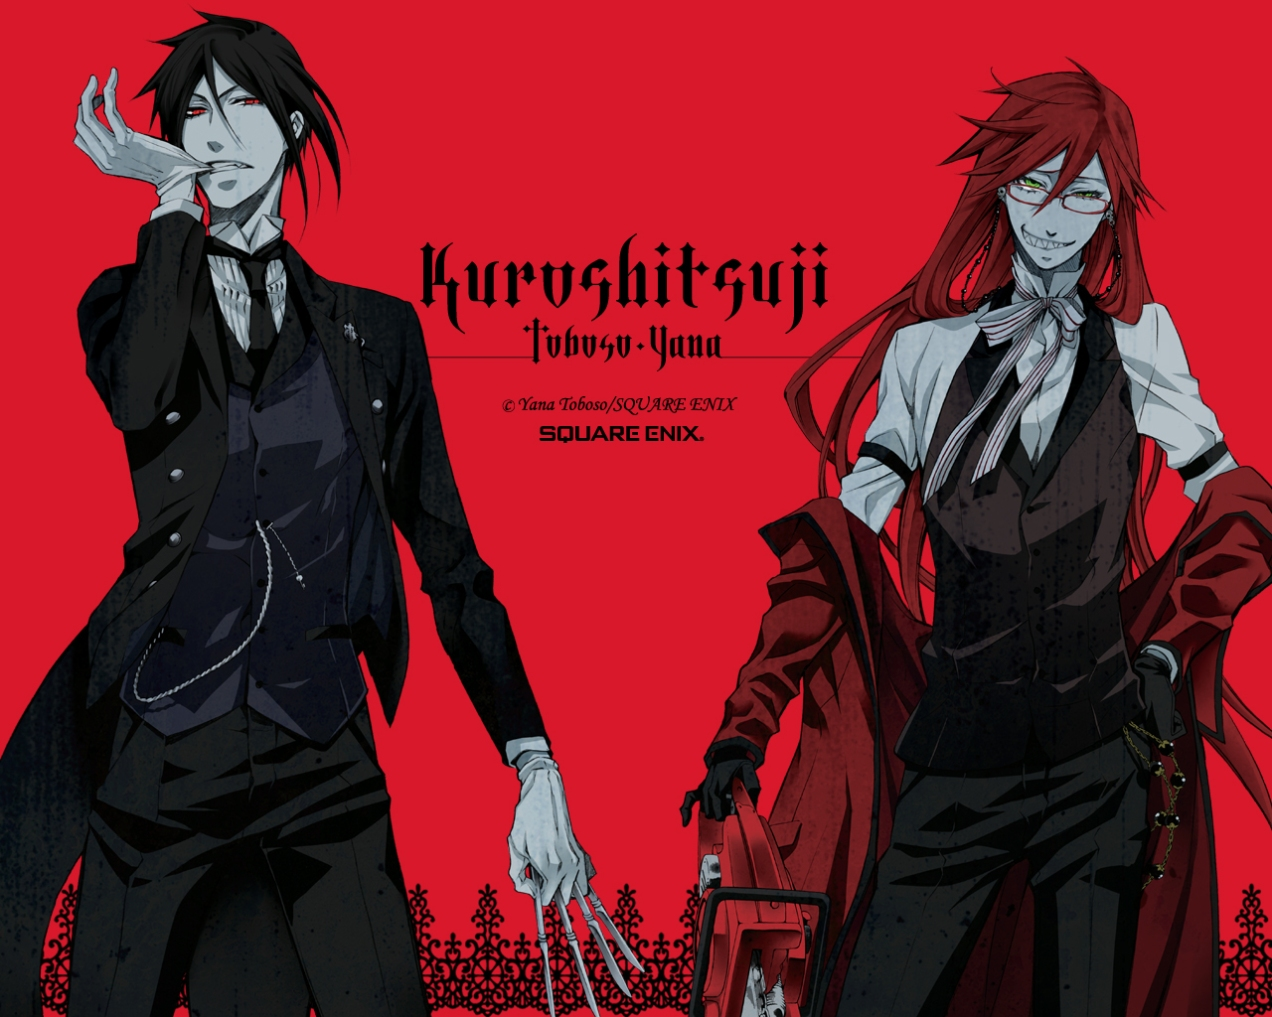 black butler kuroshitsuji anime manga gender analysis